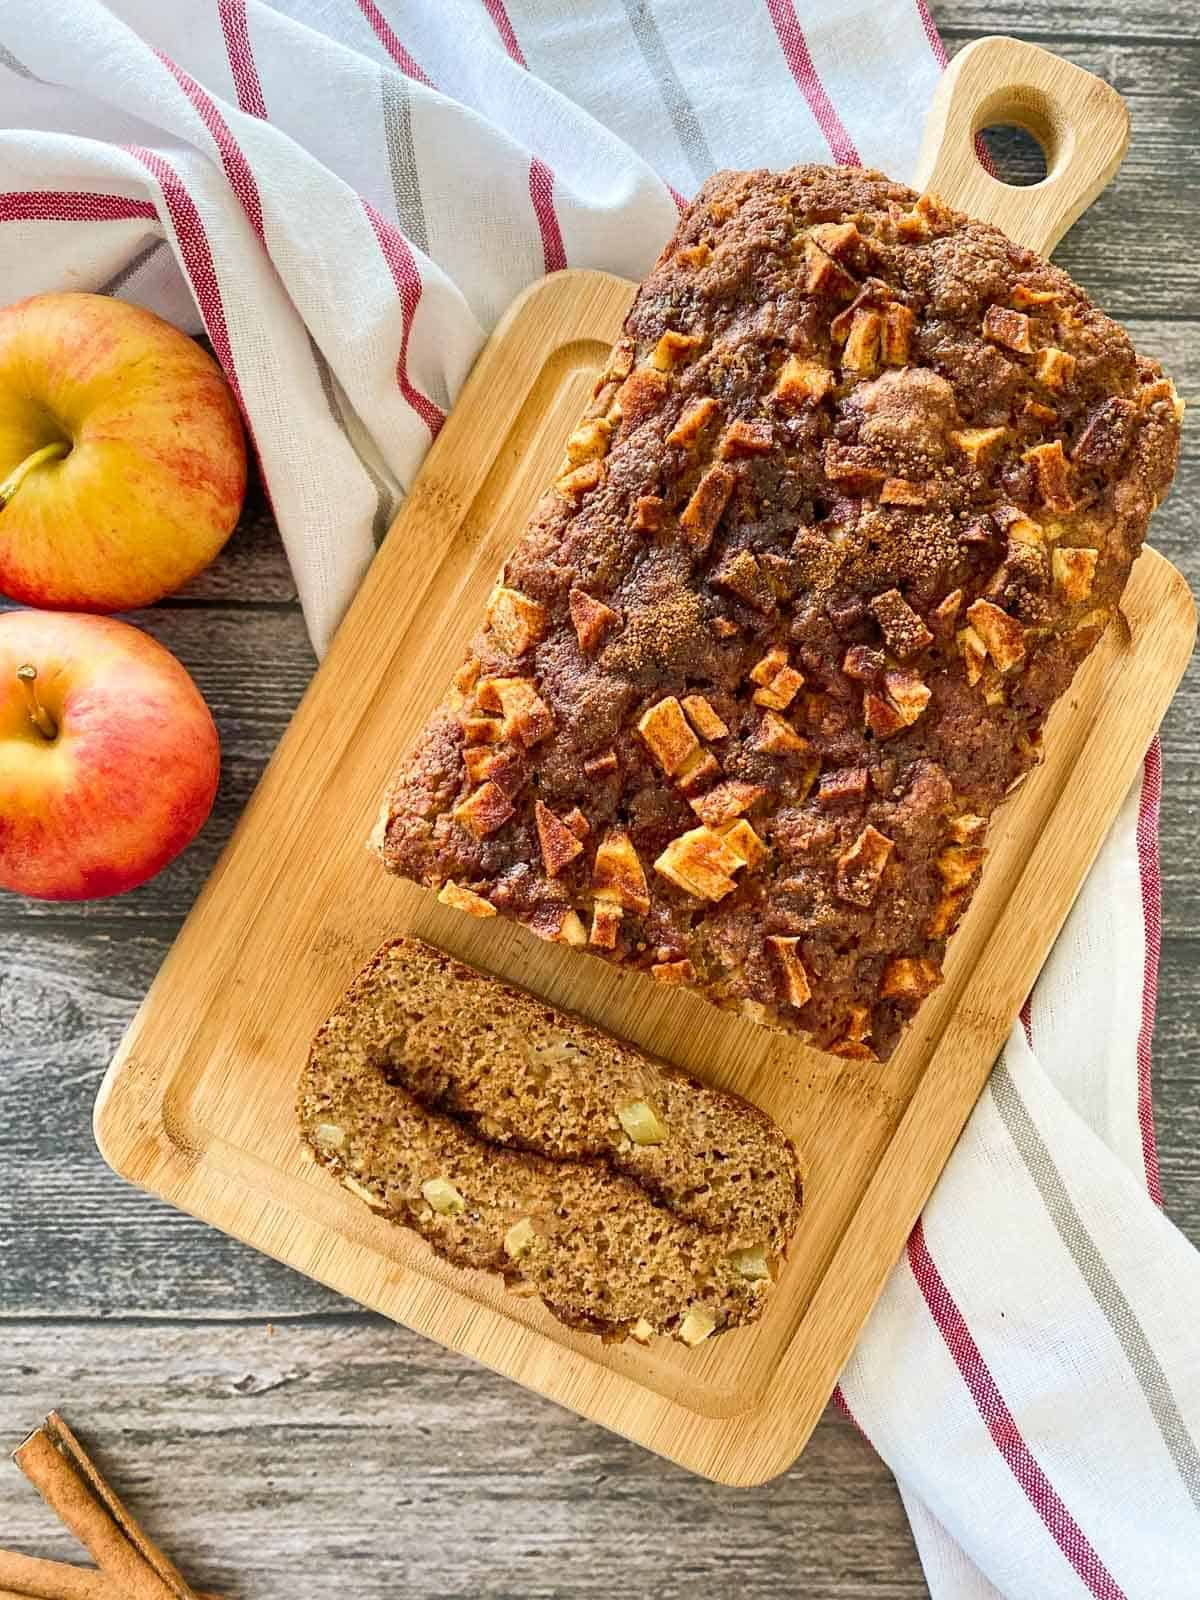 wooden cutting board with apple loaf on top with one slice cut.